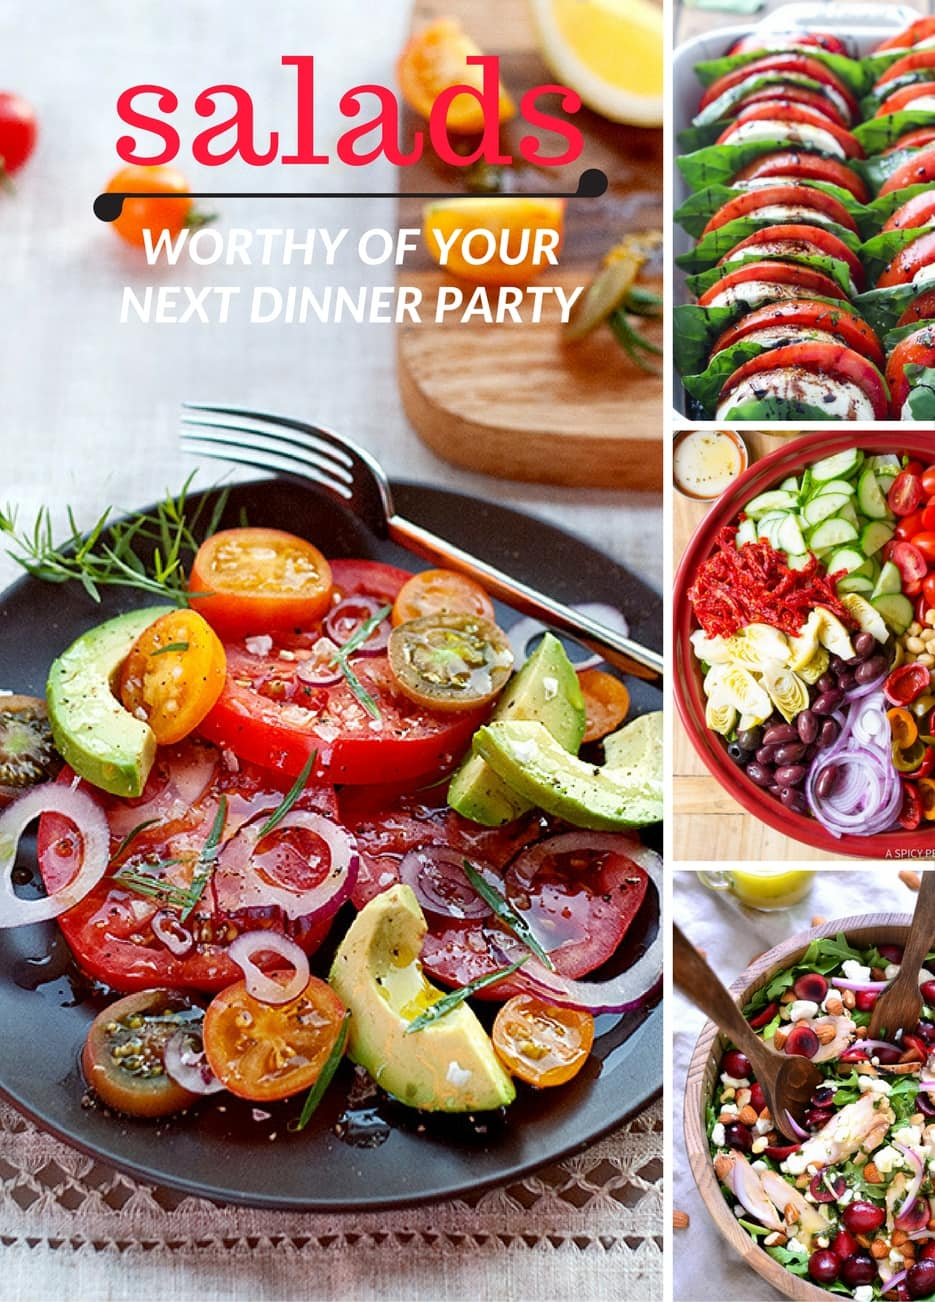 Salads Worthy of your Next Dinner Party!